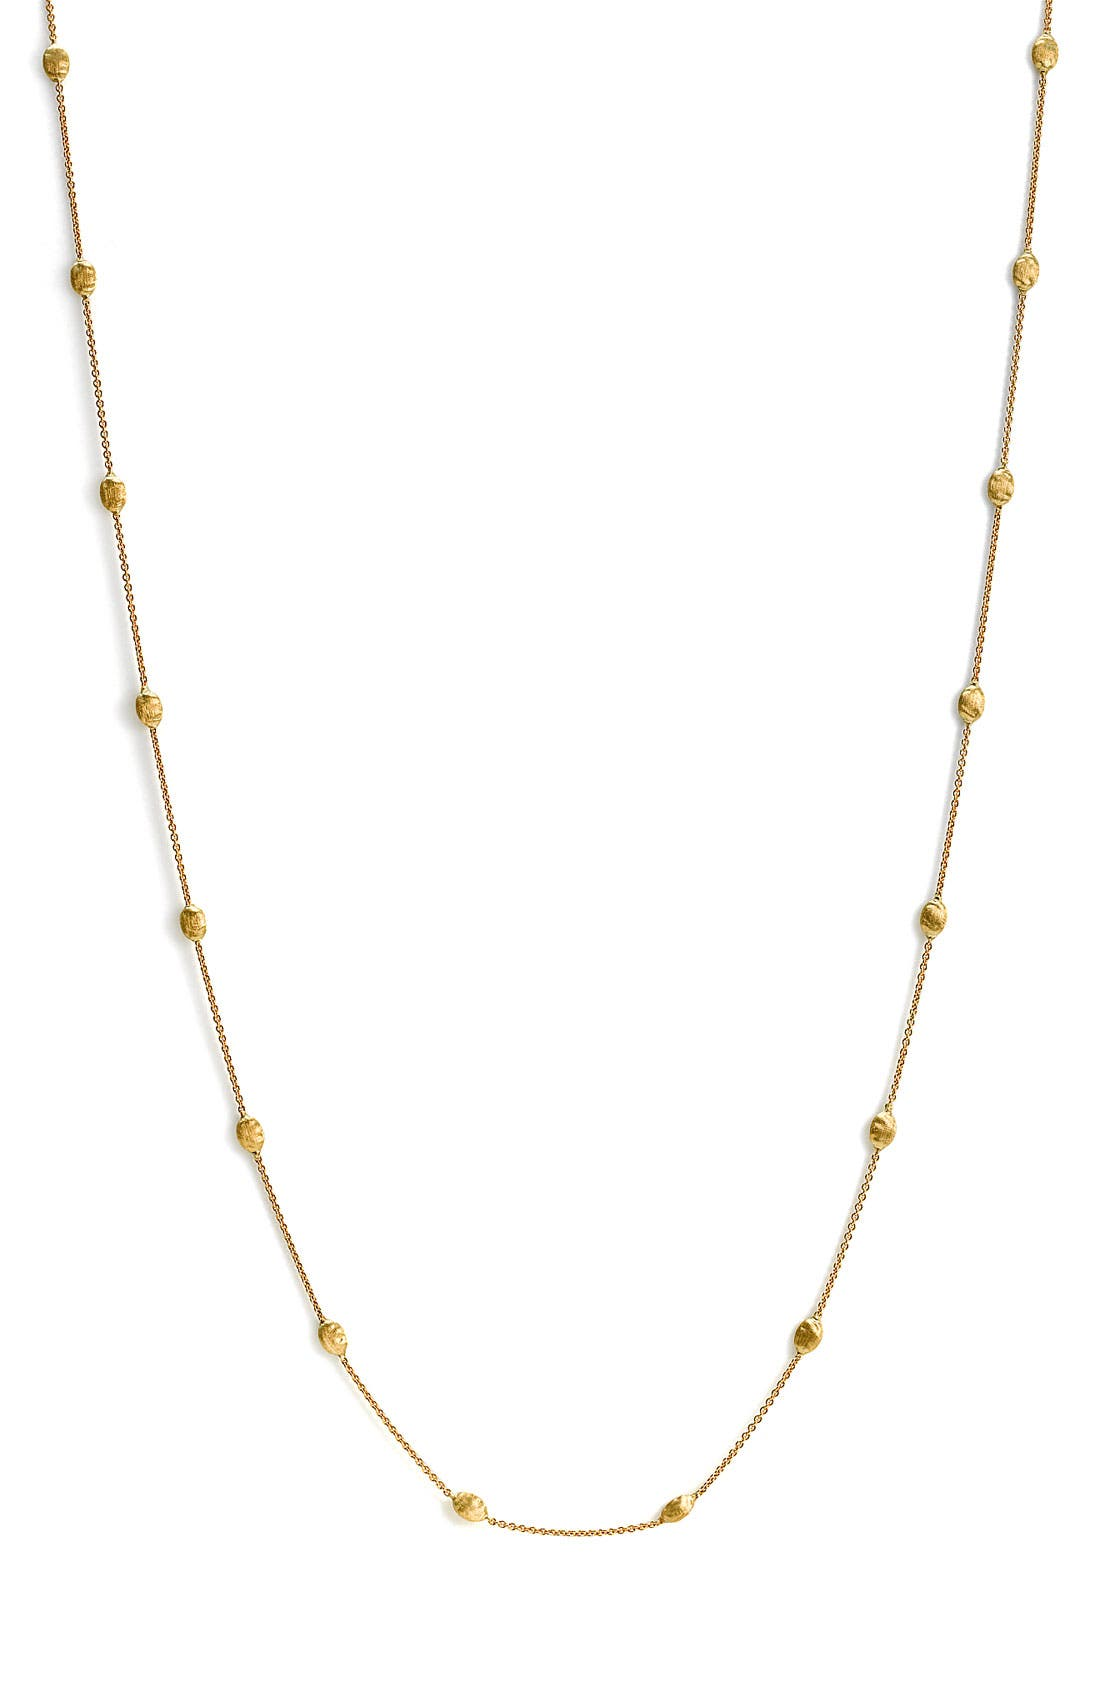 'Siviglia' Long Necklace,                             Alternate thumbnail 4, color,                             YELLOW GOLD